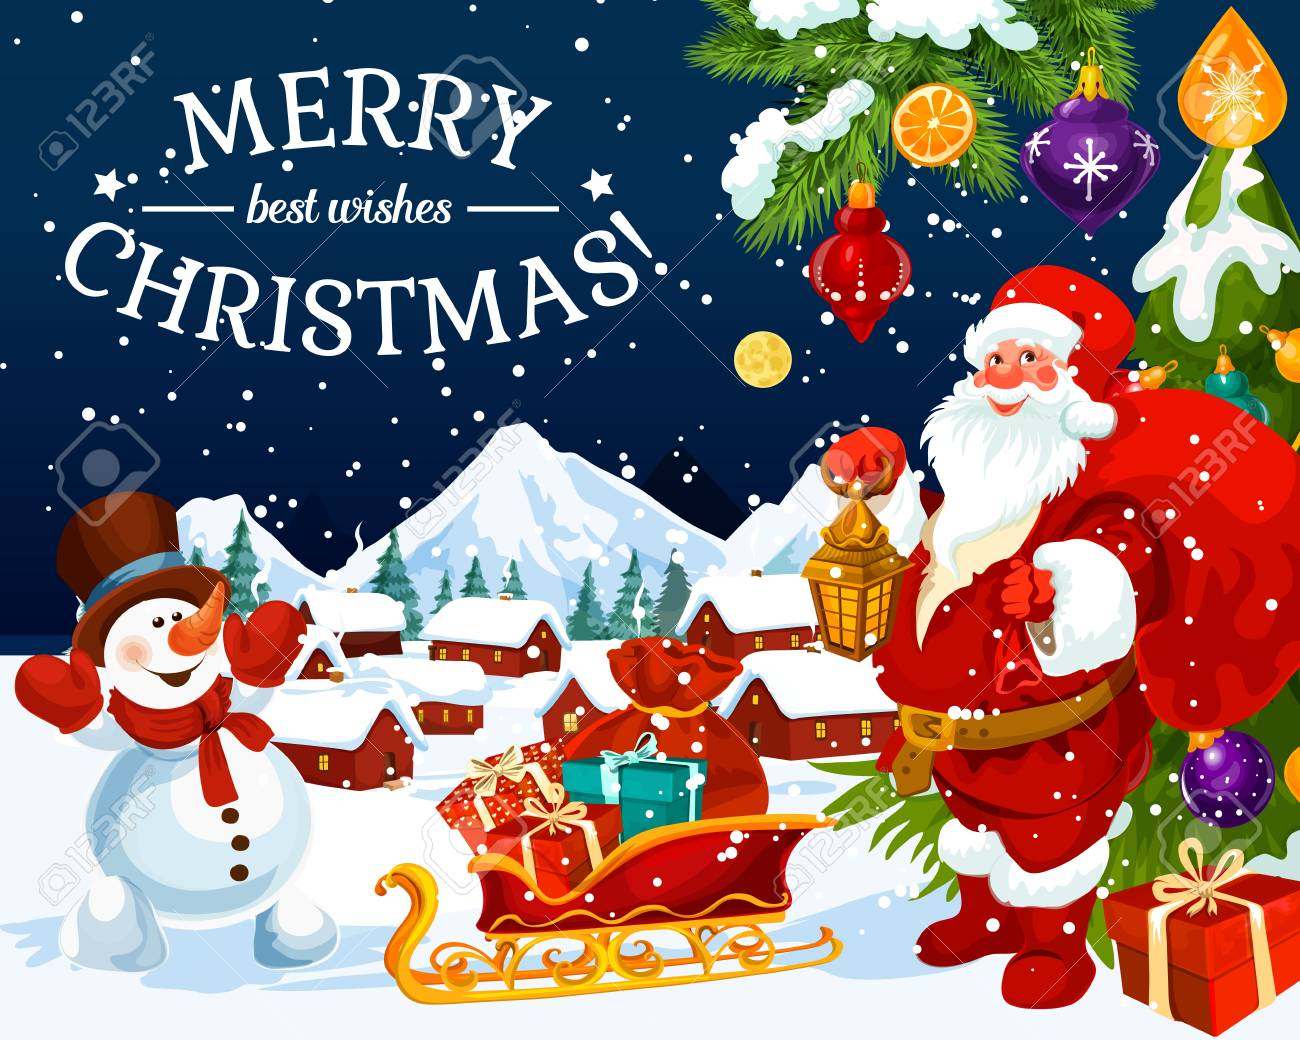 Merry Christmas Wishes And Messages For Family – Happy Christmas Greetings For Friends